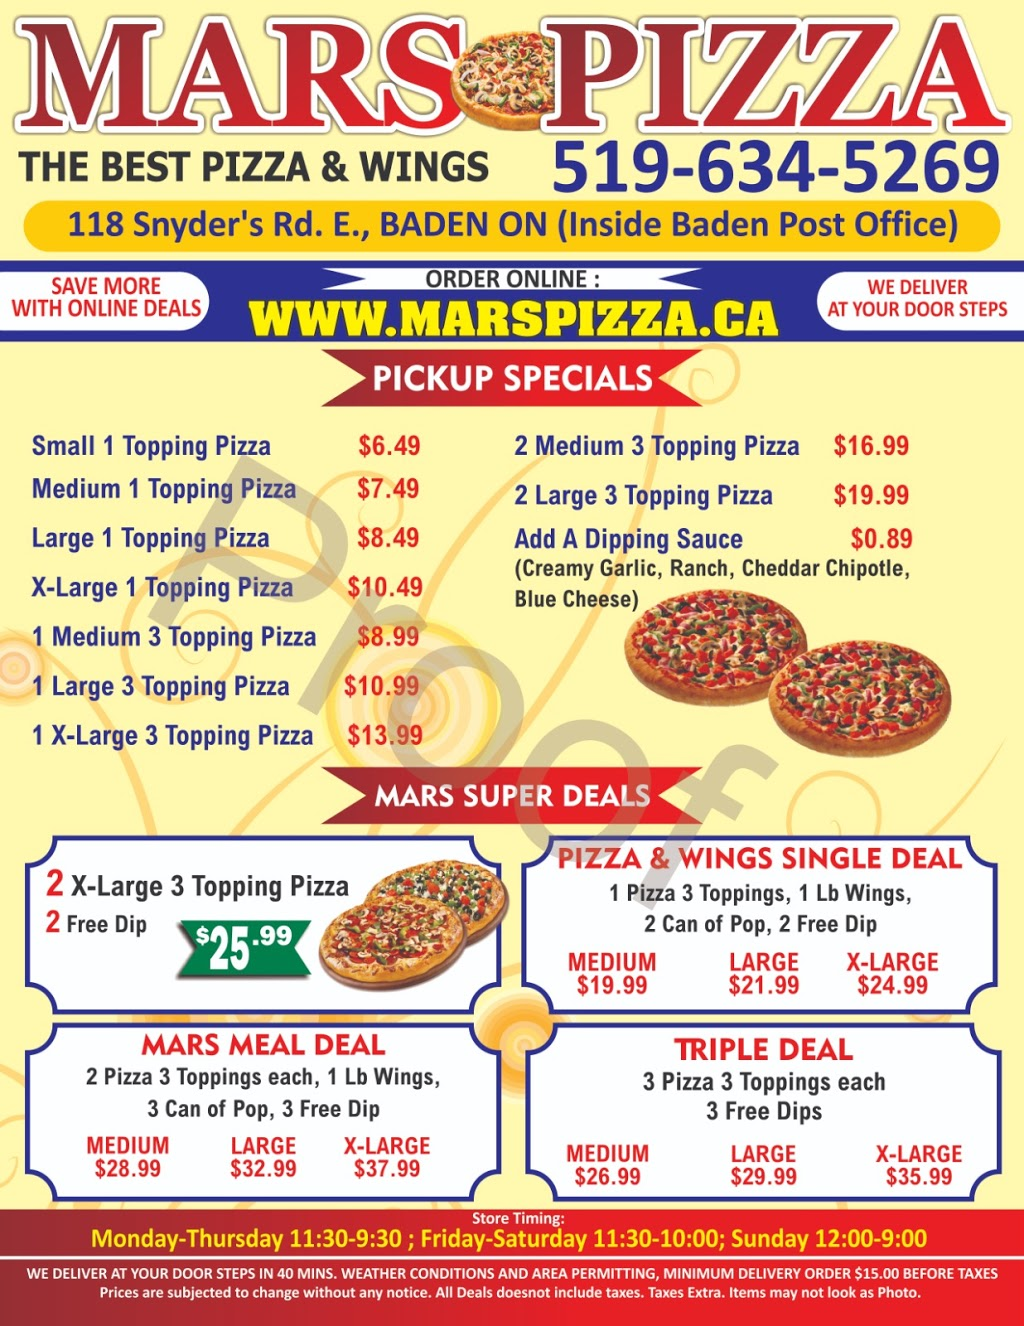 Mars Pizza   restaurant   118 Snyders Rd E, Baden, ON N3A 2V6, Canada   5196345269 OR +1 519-634-5269